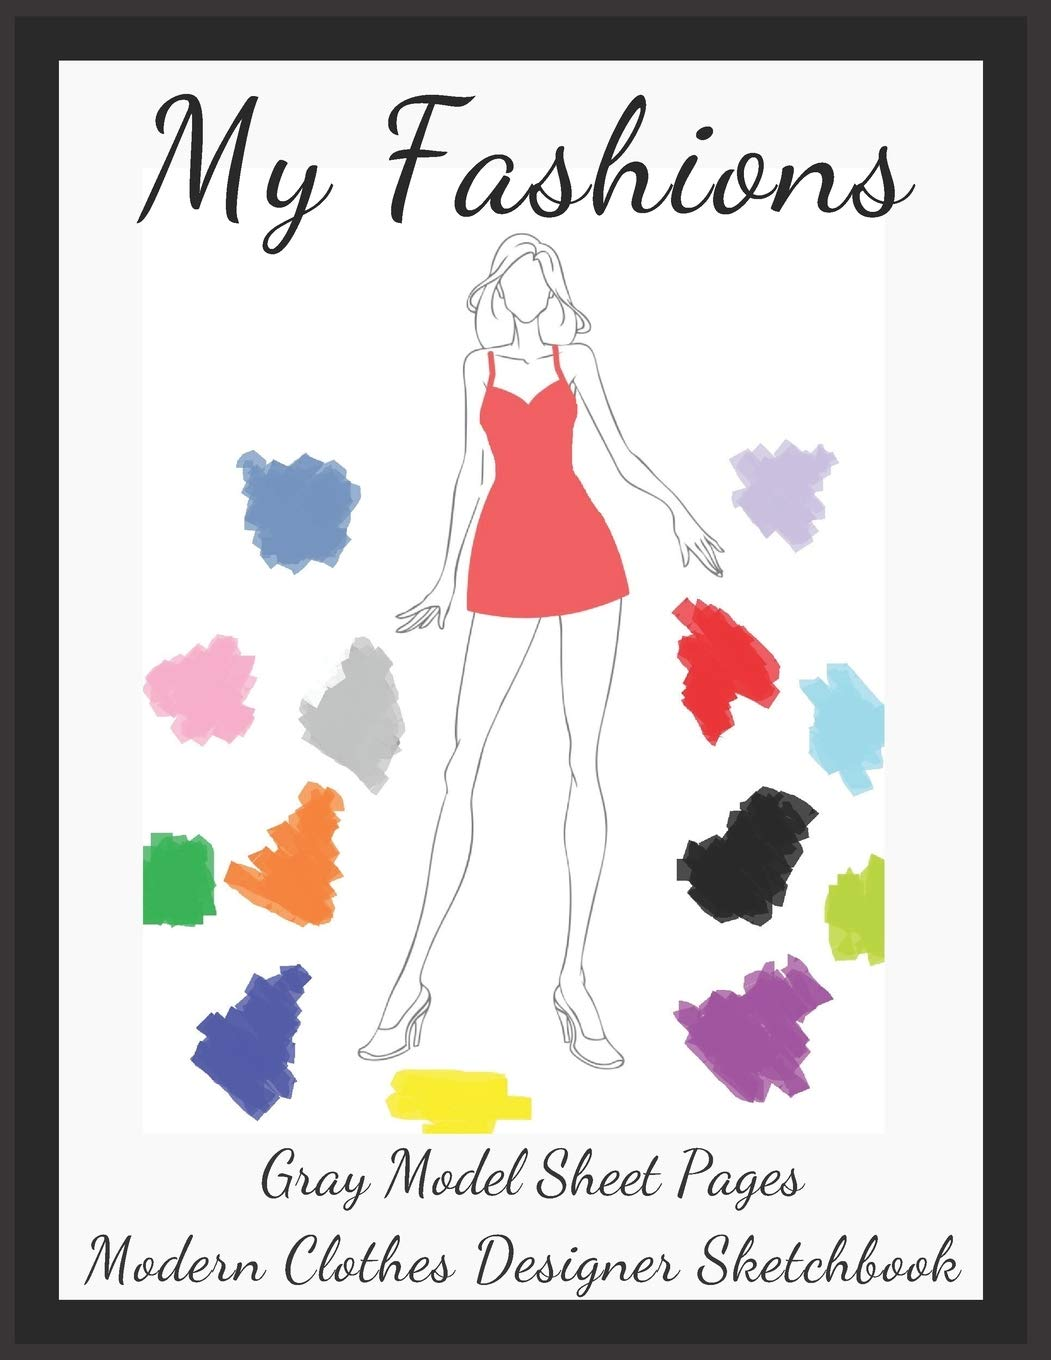 My Fashions Gray Model Sheet Pages Modern Clothes Designer Sketchbook Future Fashion Professional Female Body Silhouette Templates Accessory Glamour For Young Lady Coloring Books Closs Fashion Aids Sandy 9781674022420 Amazon Com